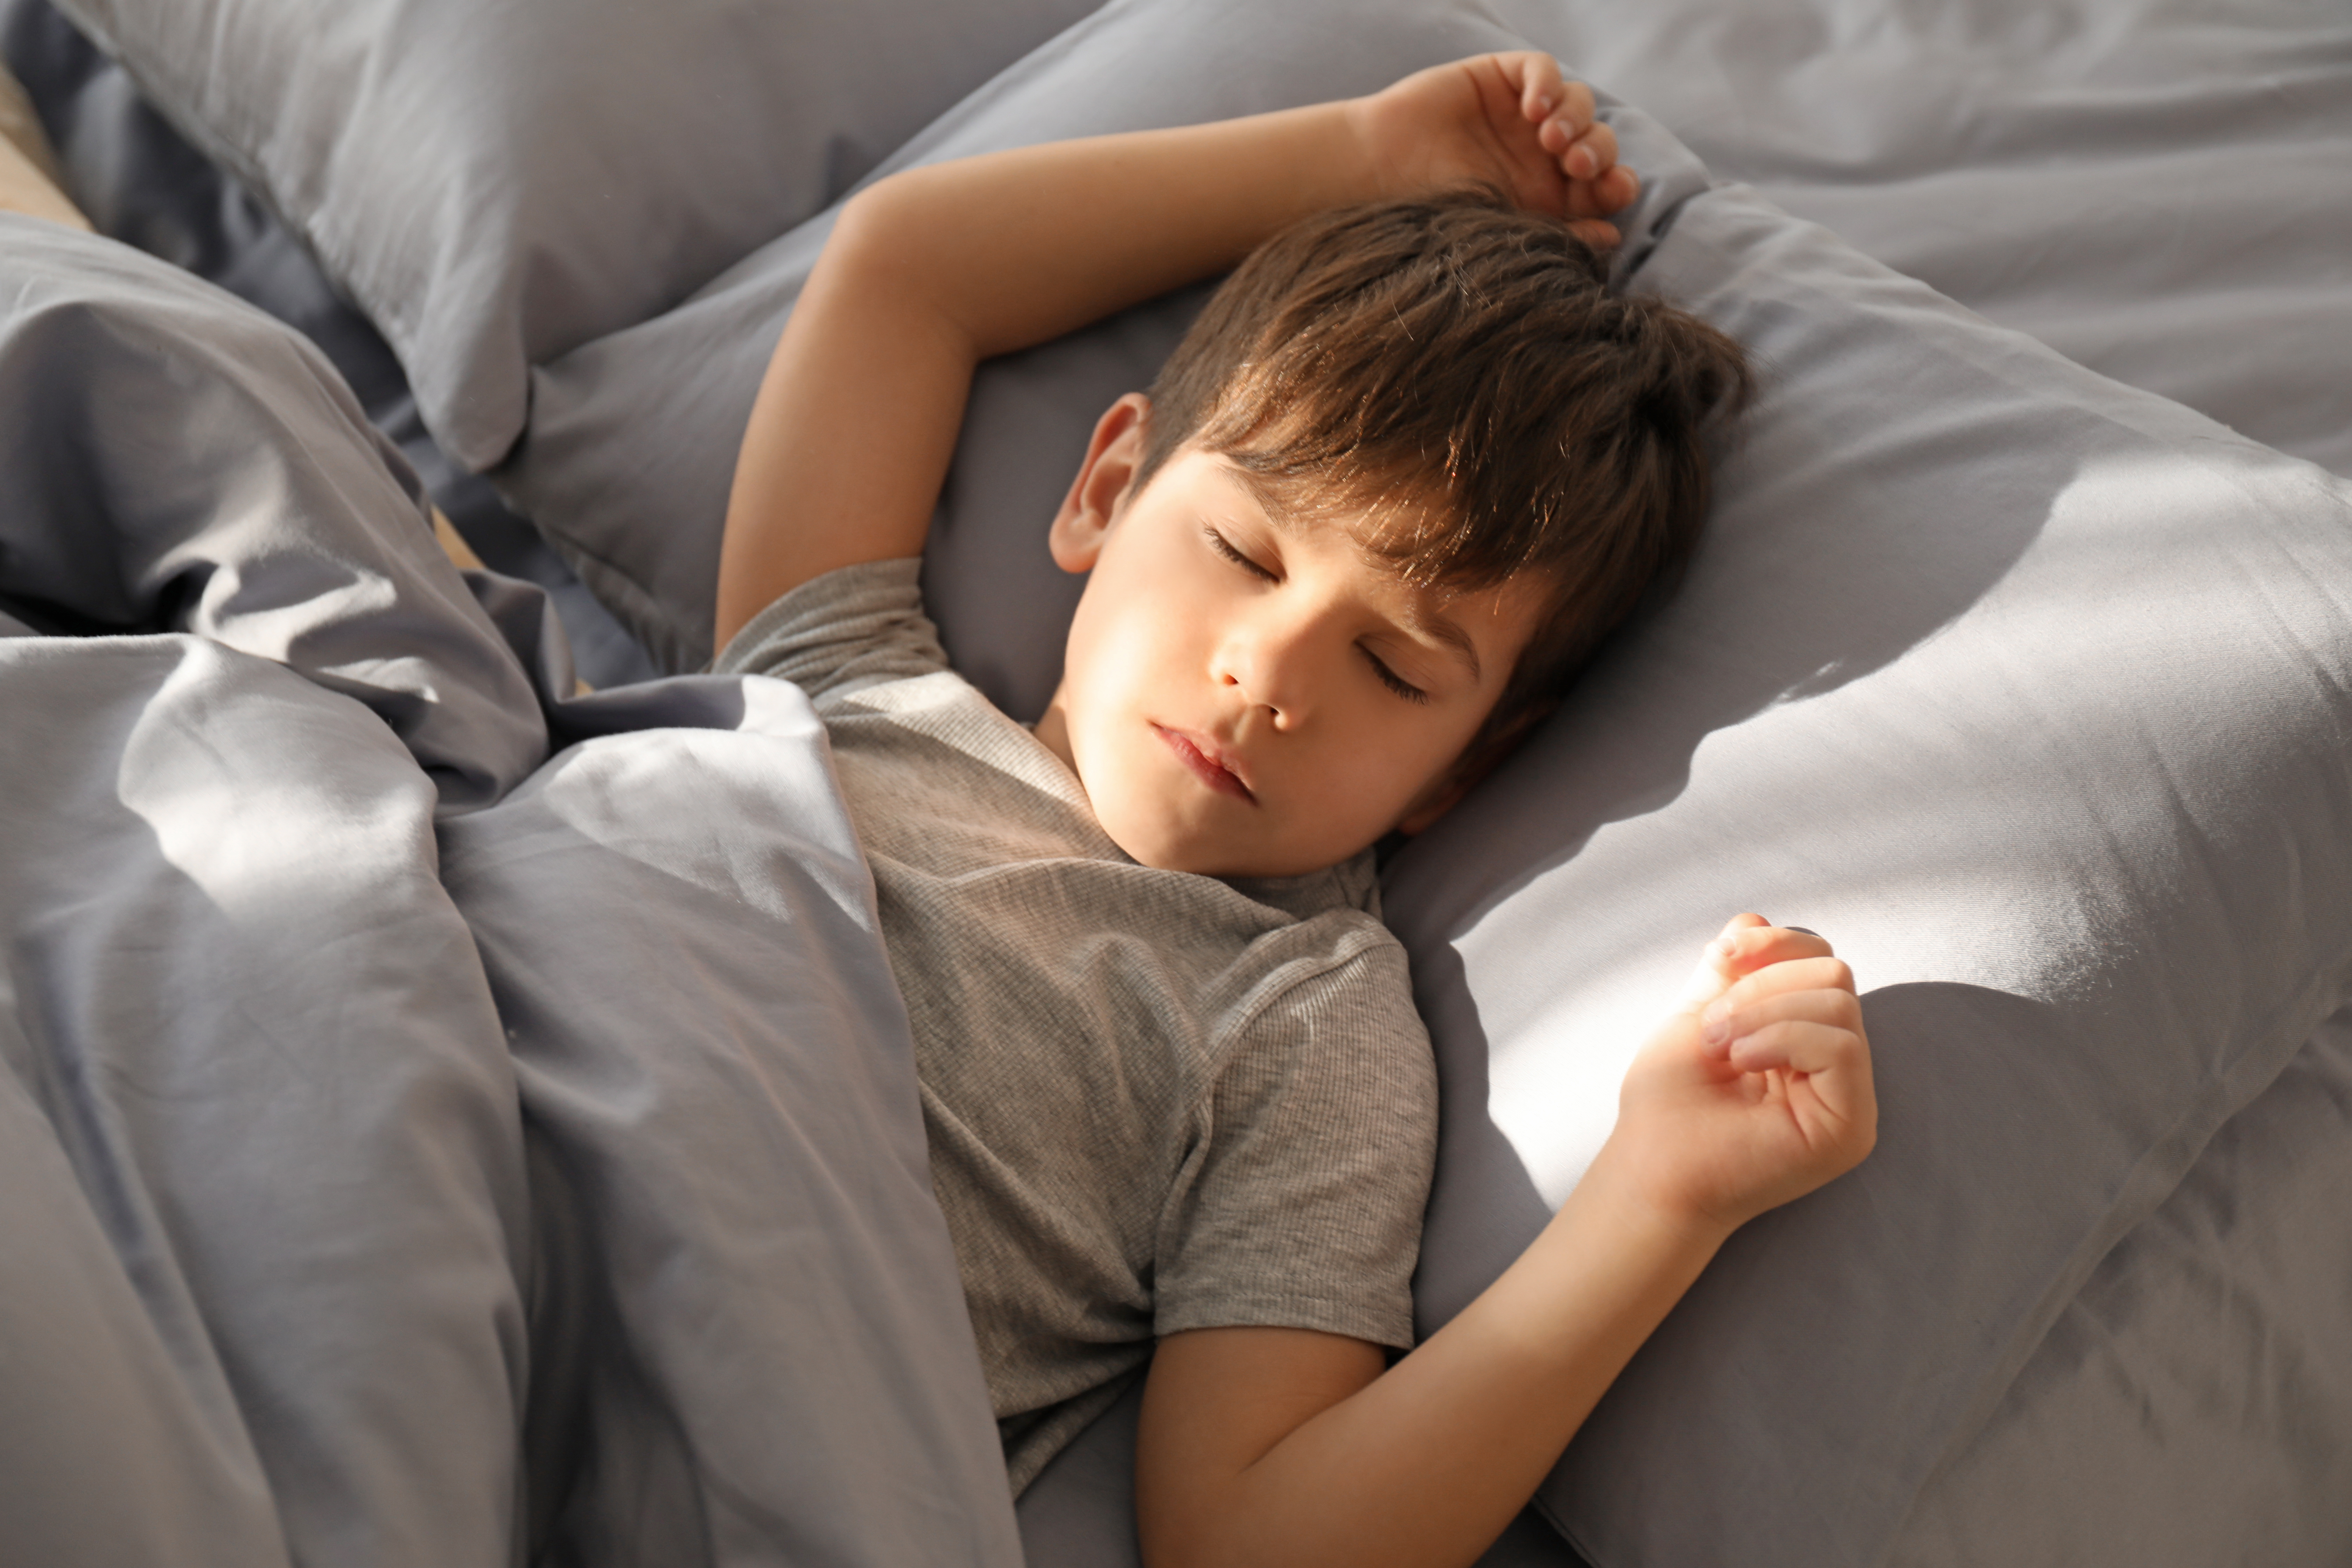 10 Year old Can't Relax and Sleep - Meltdowns from Noise, Lights